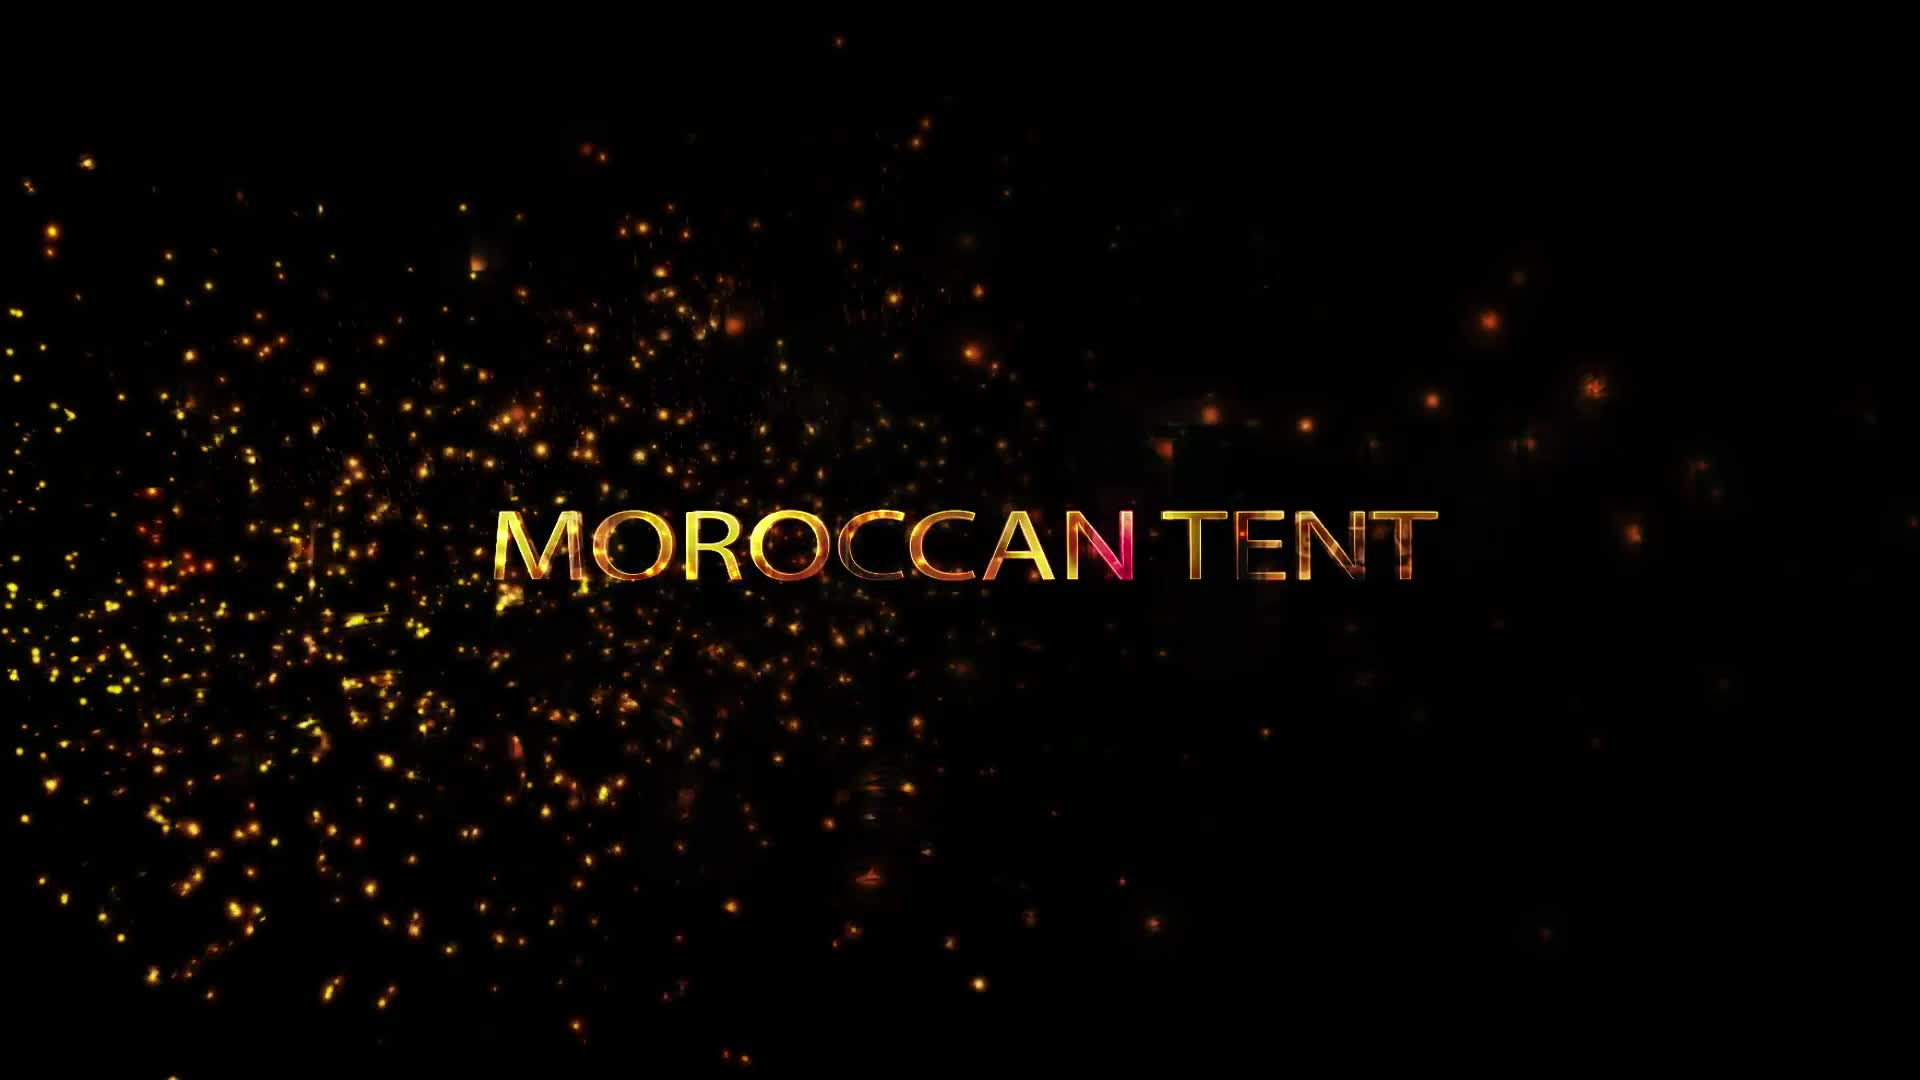 Moroccan Tent - Restaurants - 4032365620